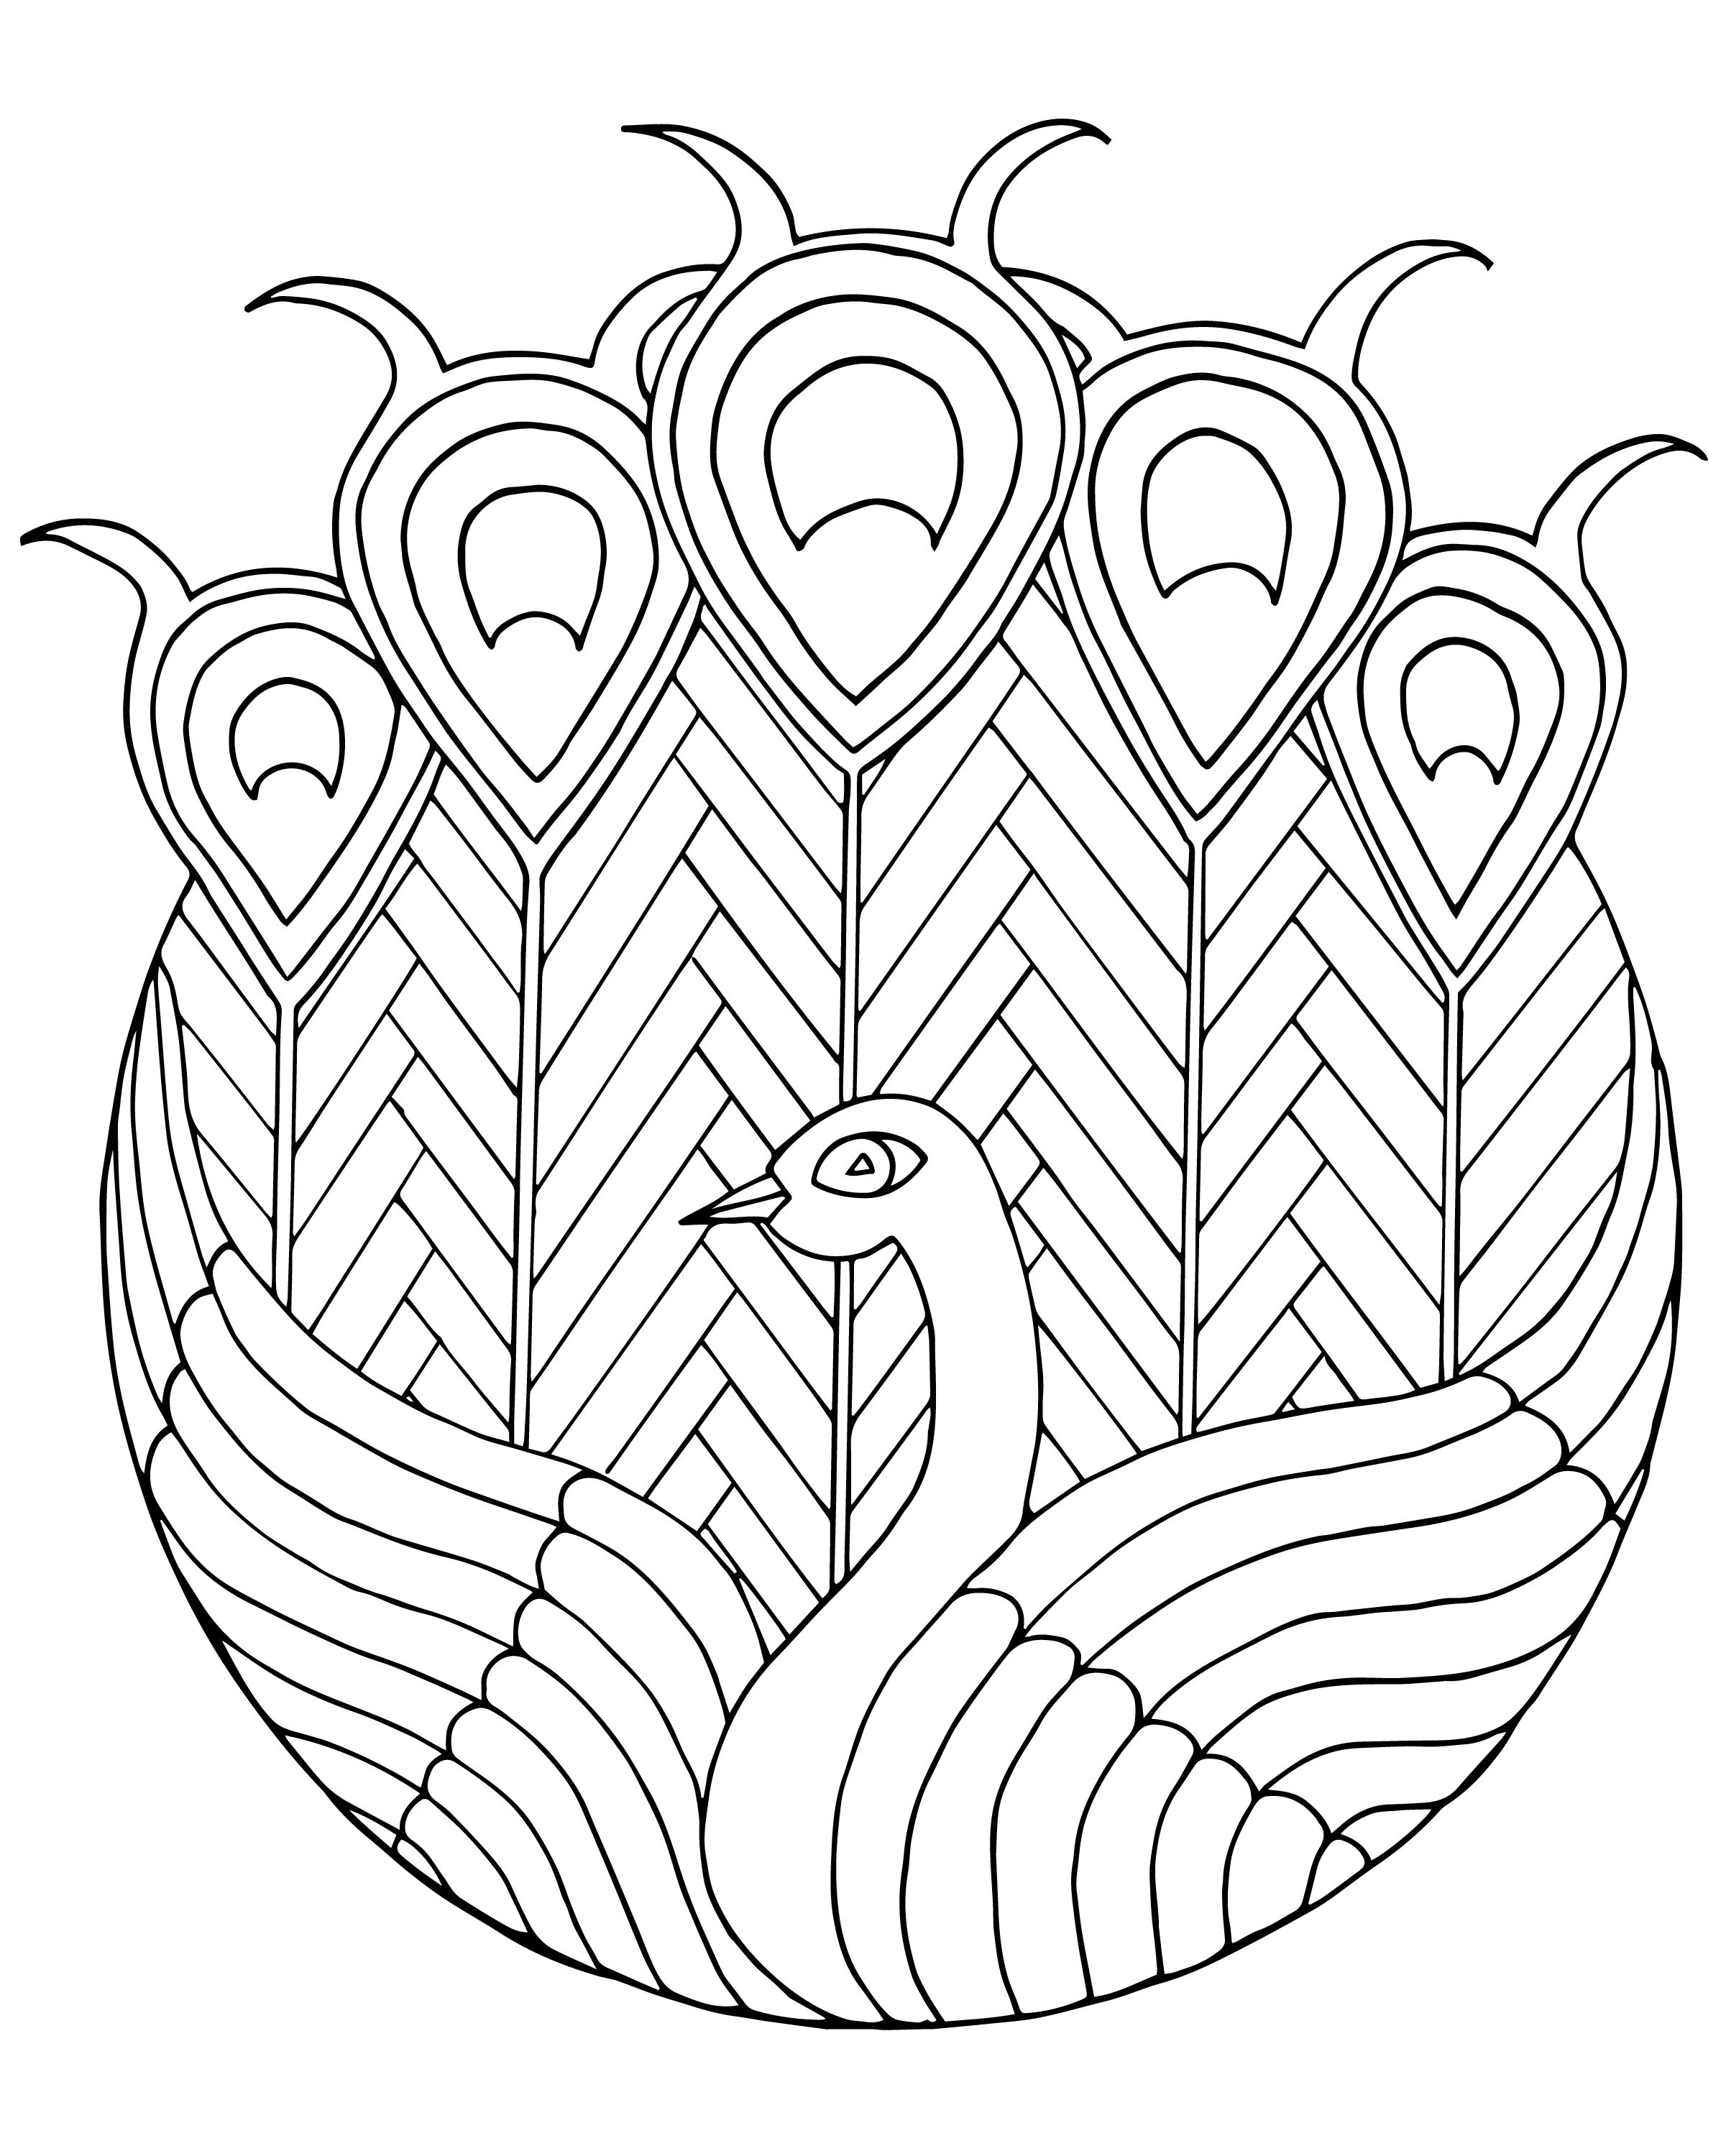 peacock stained glass adult coloring page